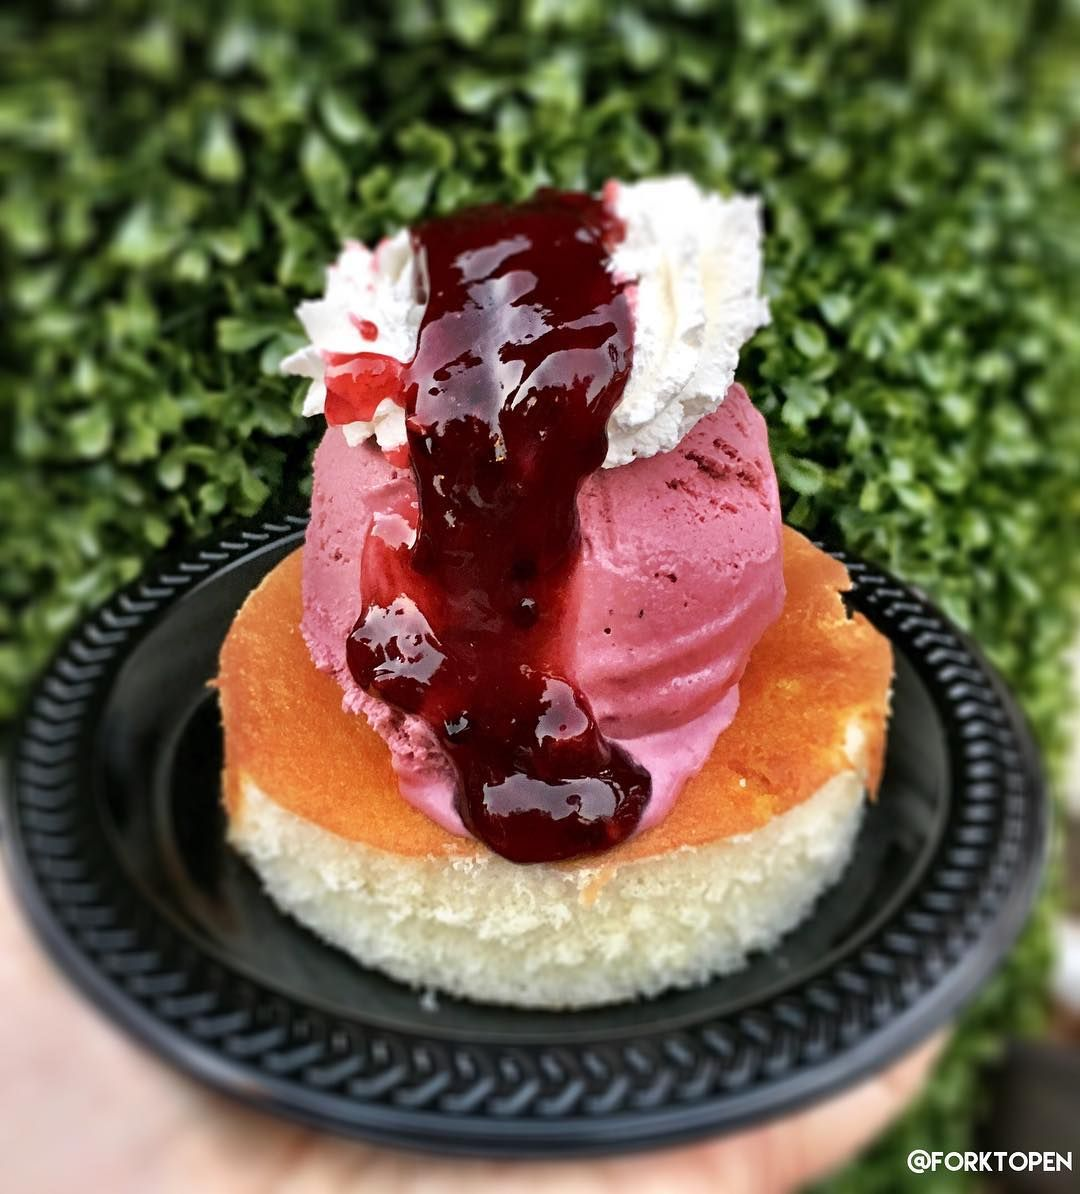 Good news folks! It's day one of the #BoysenberryFestival at Knott's Berry Farm!  From now until April 3rd indulge yourself with over 70 boysenberry items including this Trifle - a vanilla cake topped with boysenberry ice cream boysenberry compote and whipped cream.